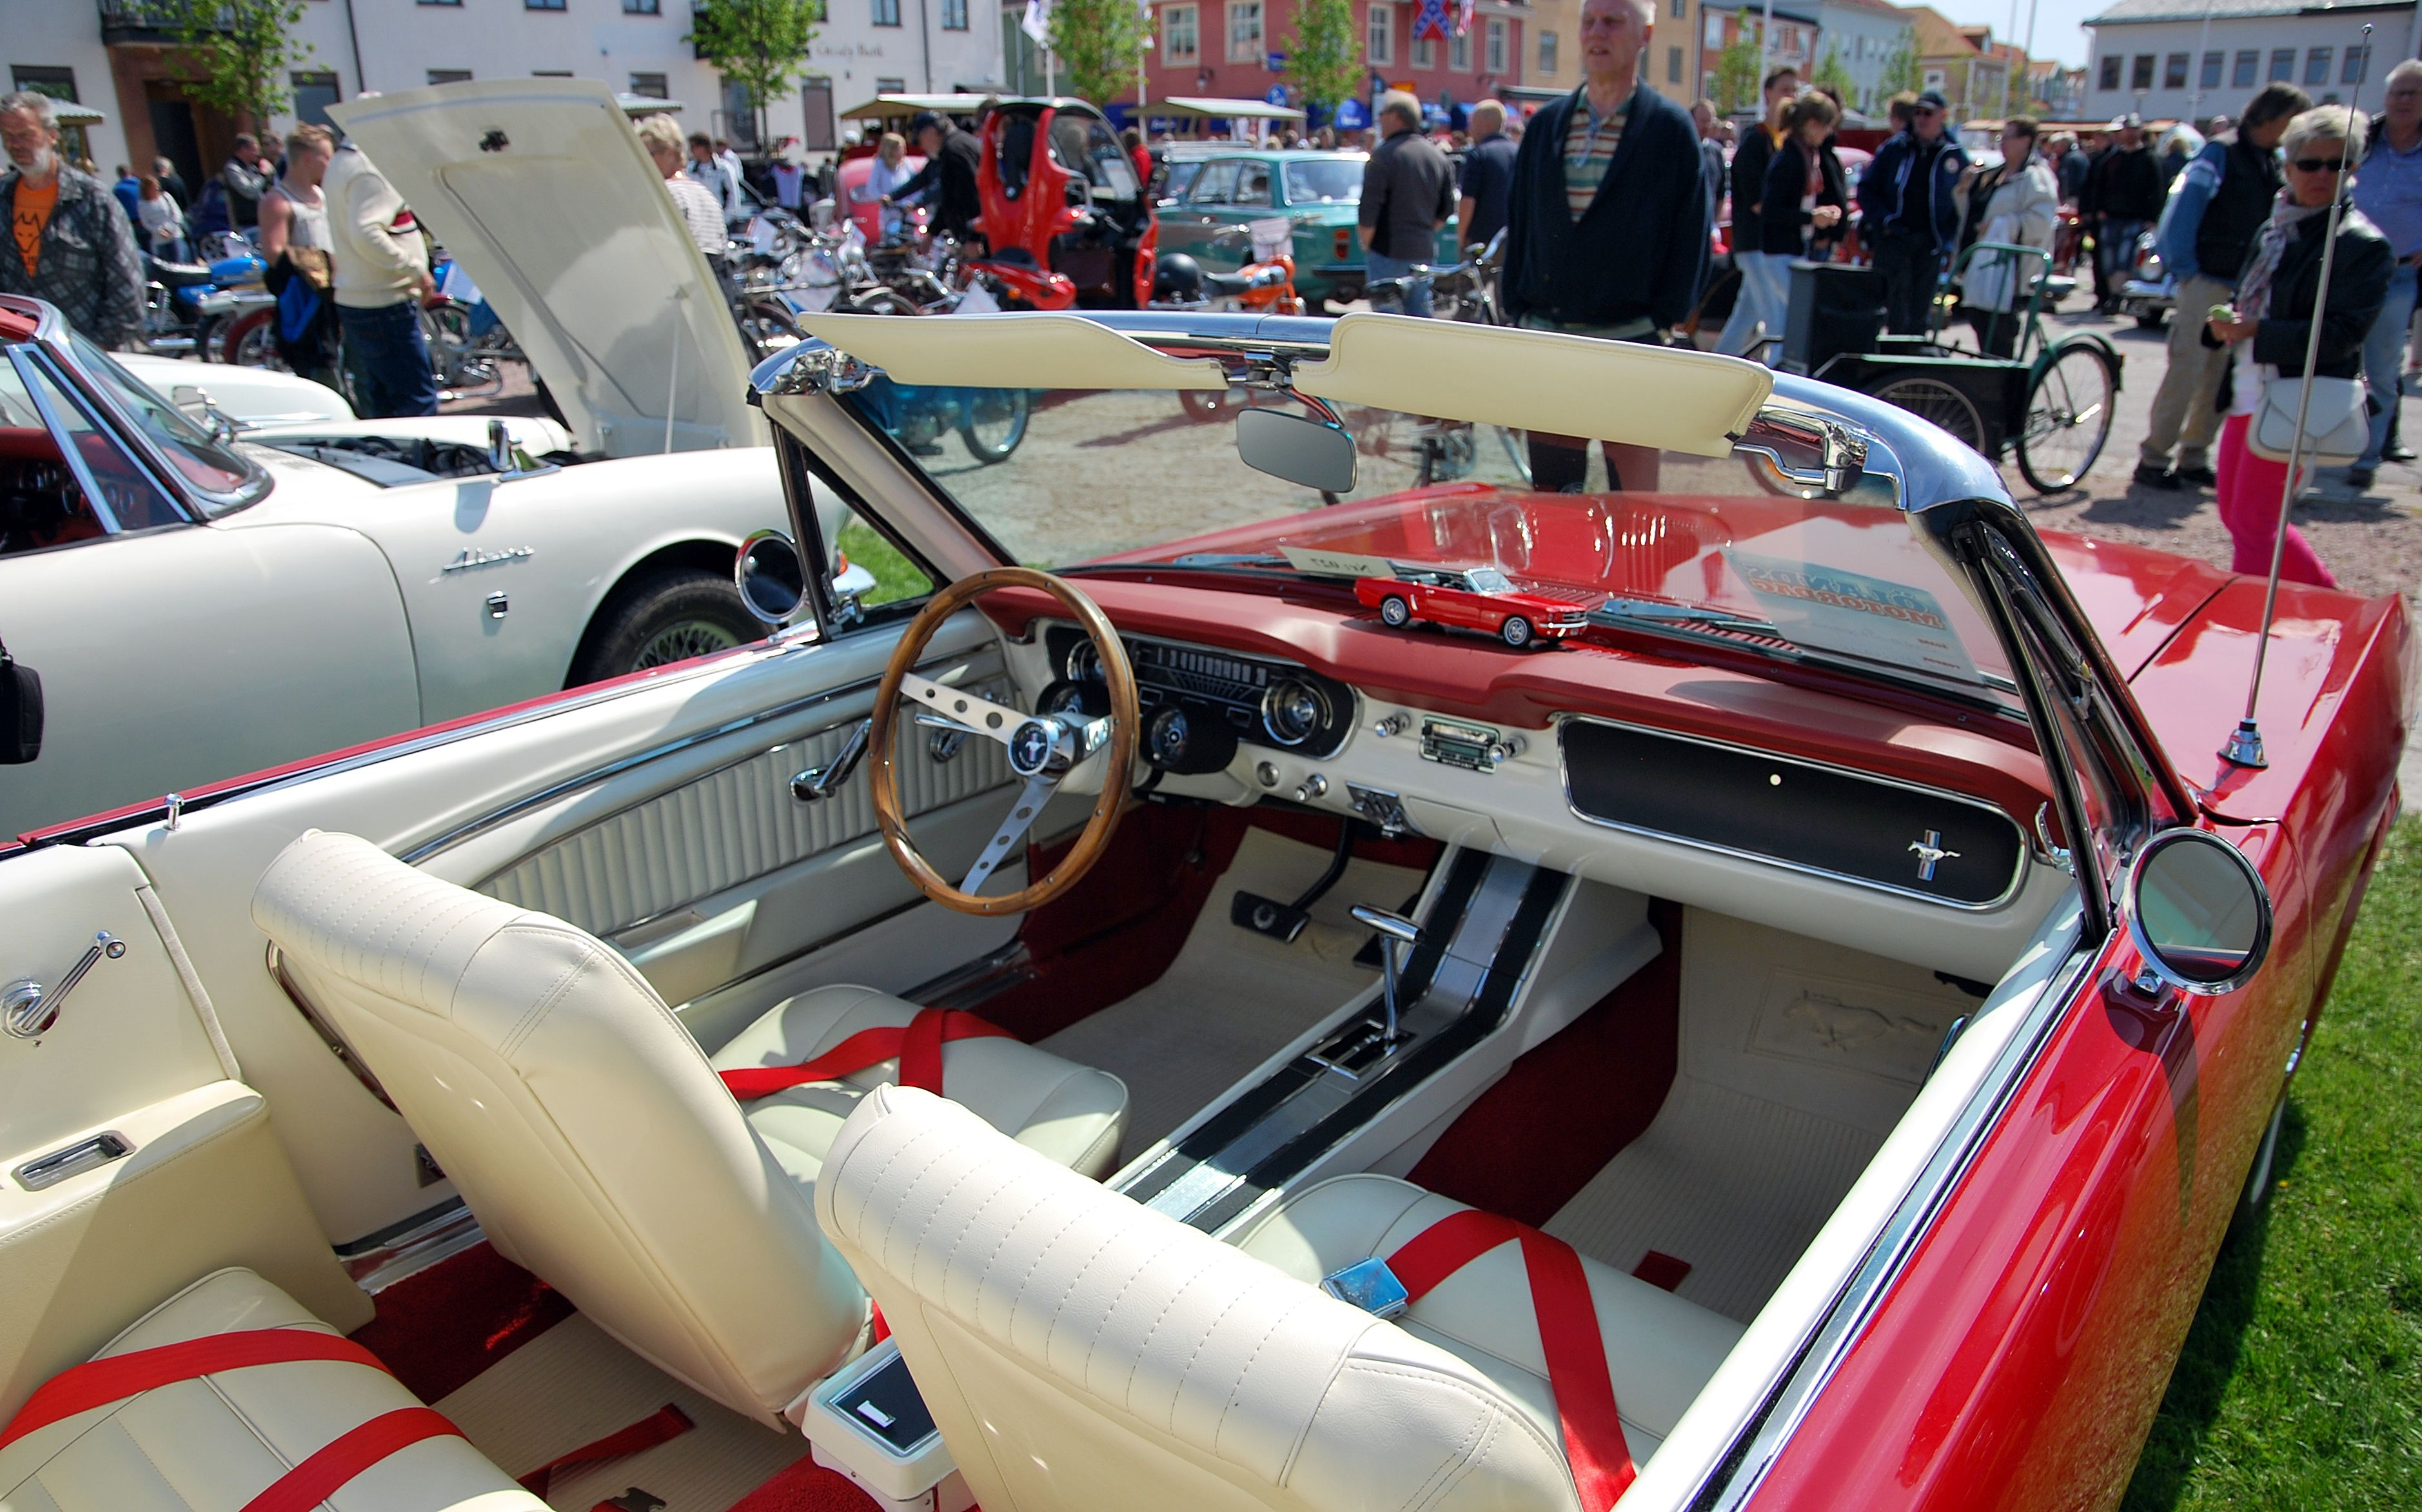 65 mustang for sale ontario - 1965 Mustang Convertible Red White Interior Google Search